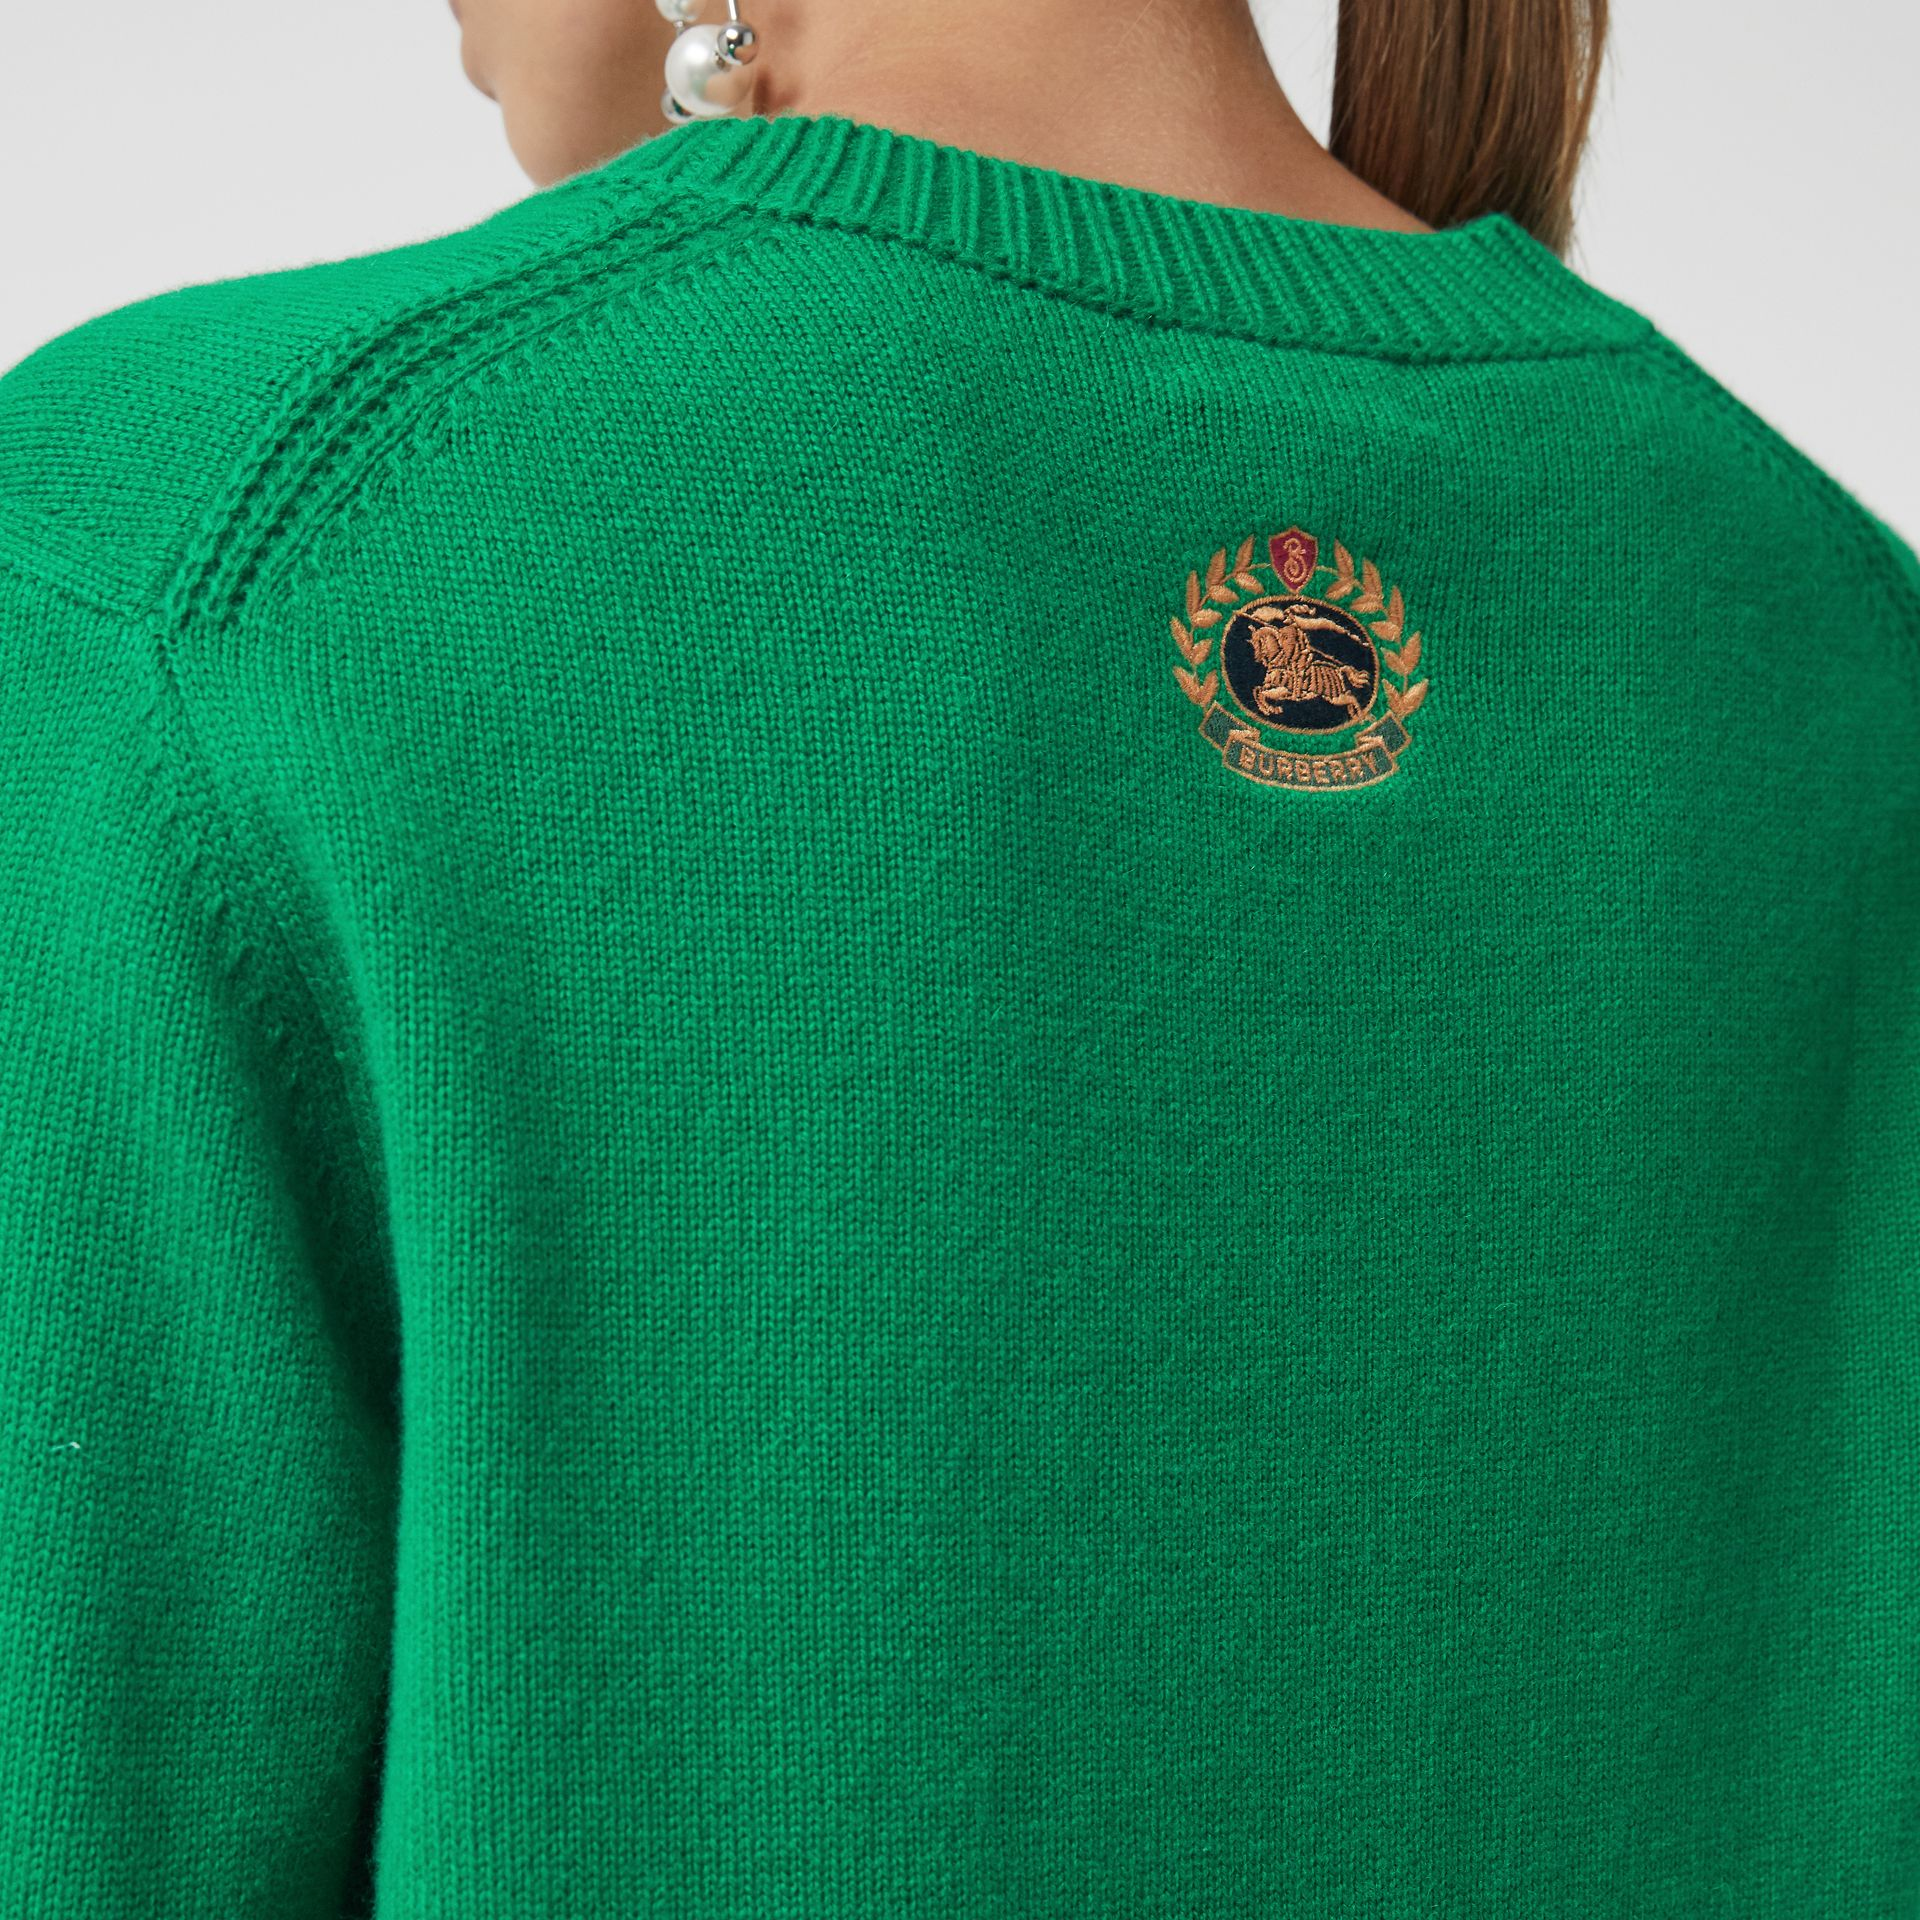 Archive Logo Appliqué Cashmere Sweater in Vibrant Green - Women | Burberry Australia - gallery image 1